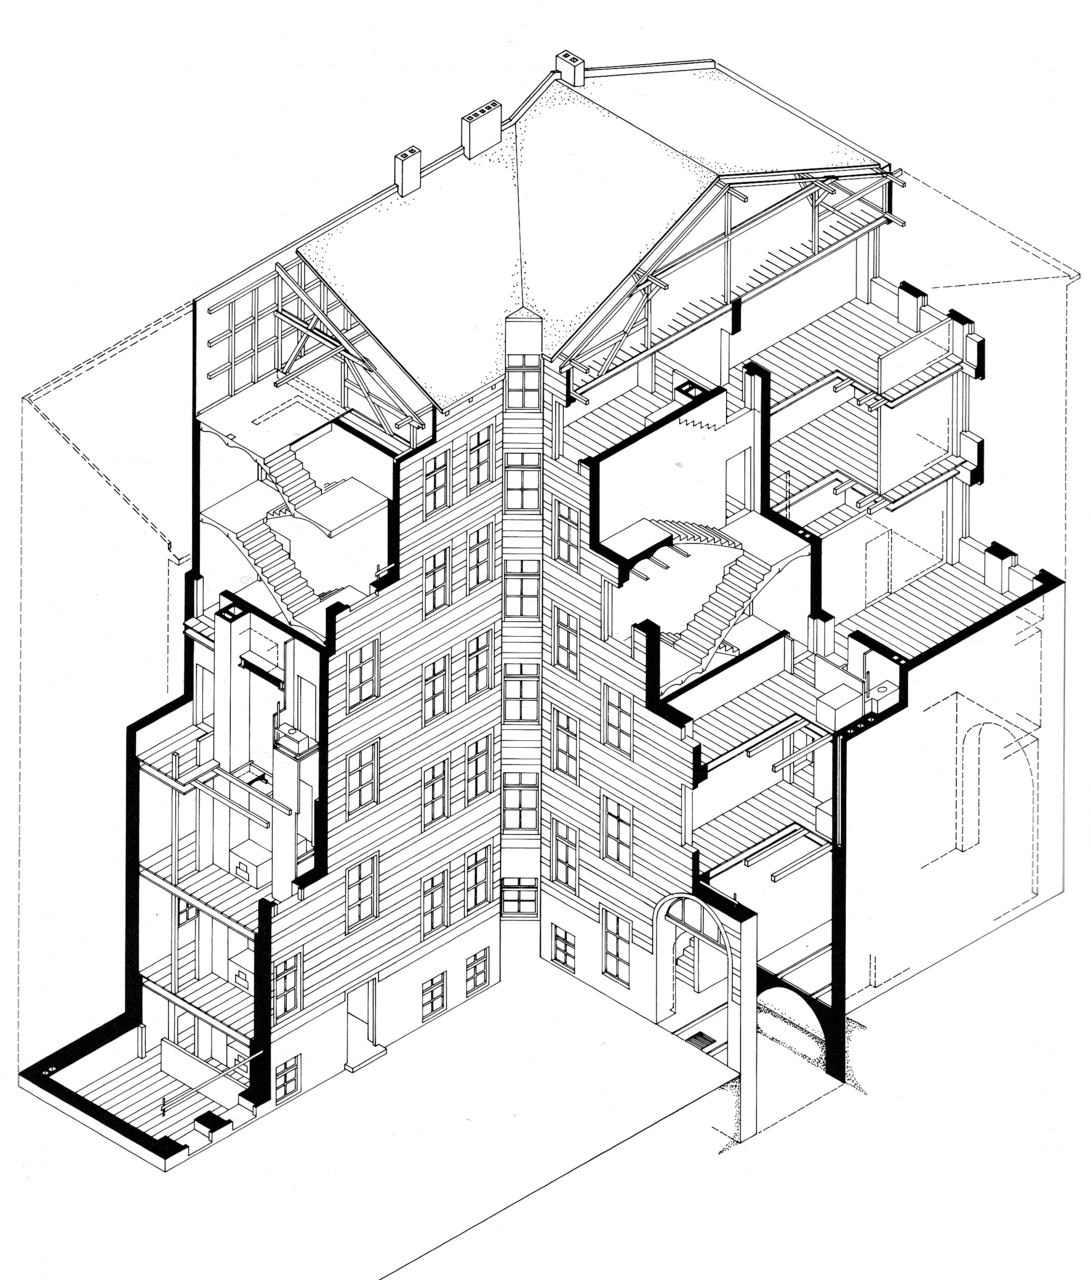 Architecture as Urban Catalyst: AXONOMETRIC SECTION ACROSS